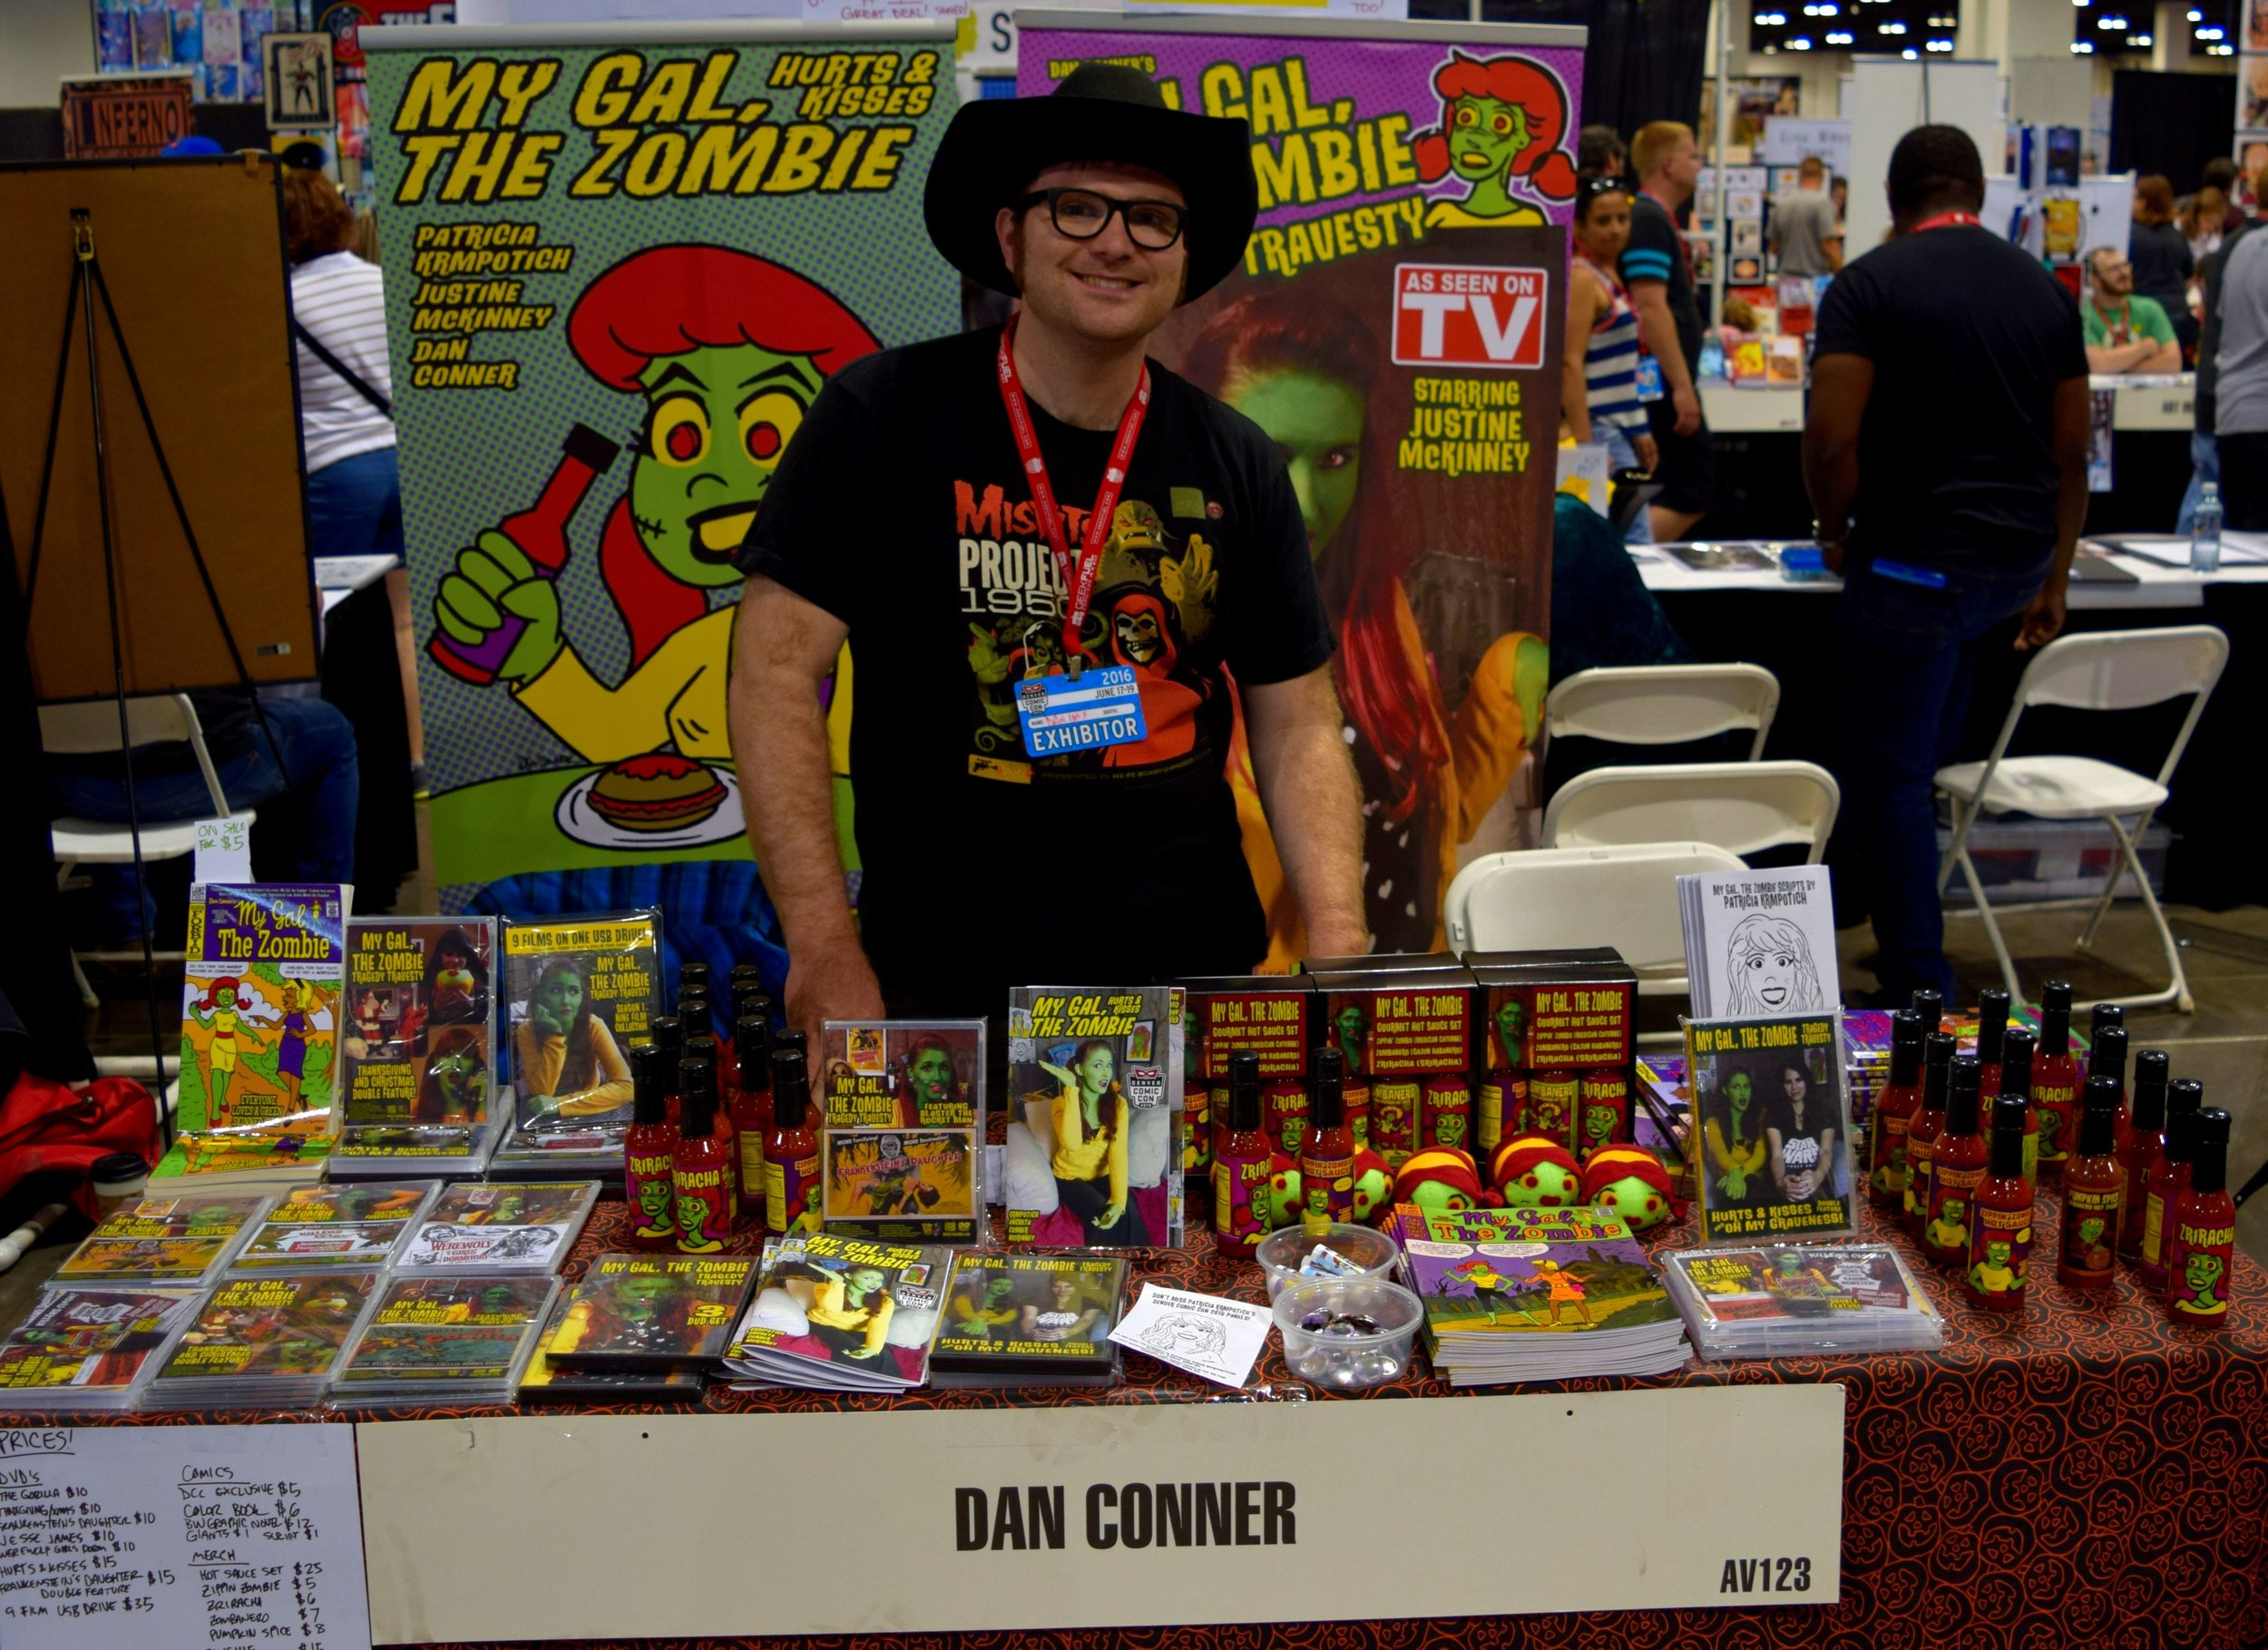 Dan Conner with his books at Denver Comic Con 2016.